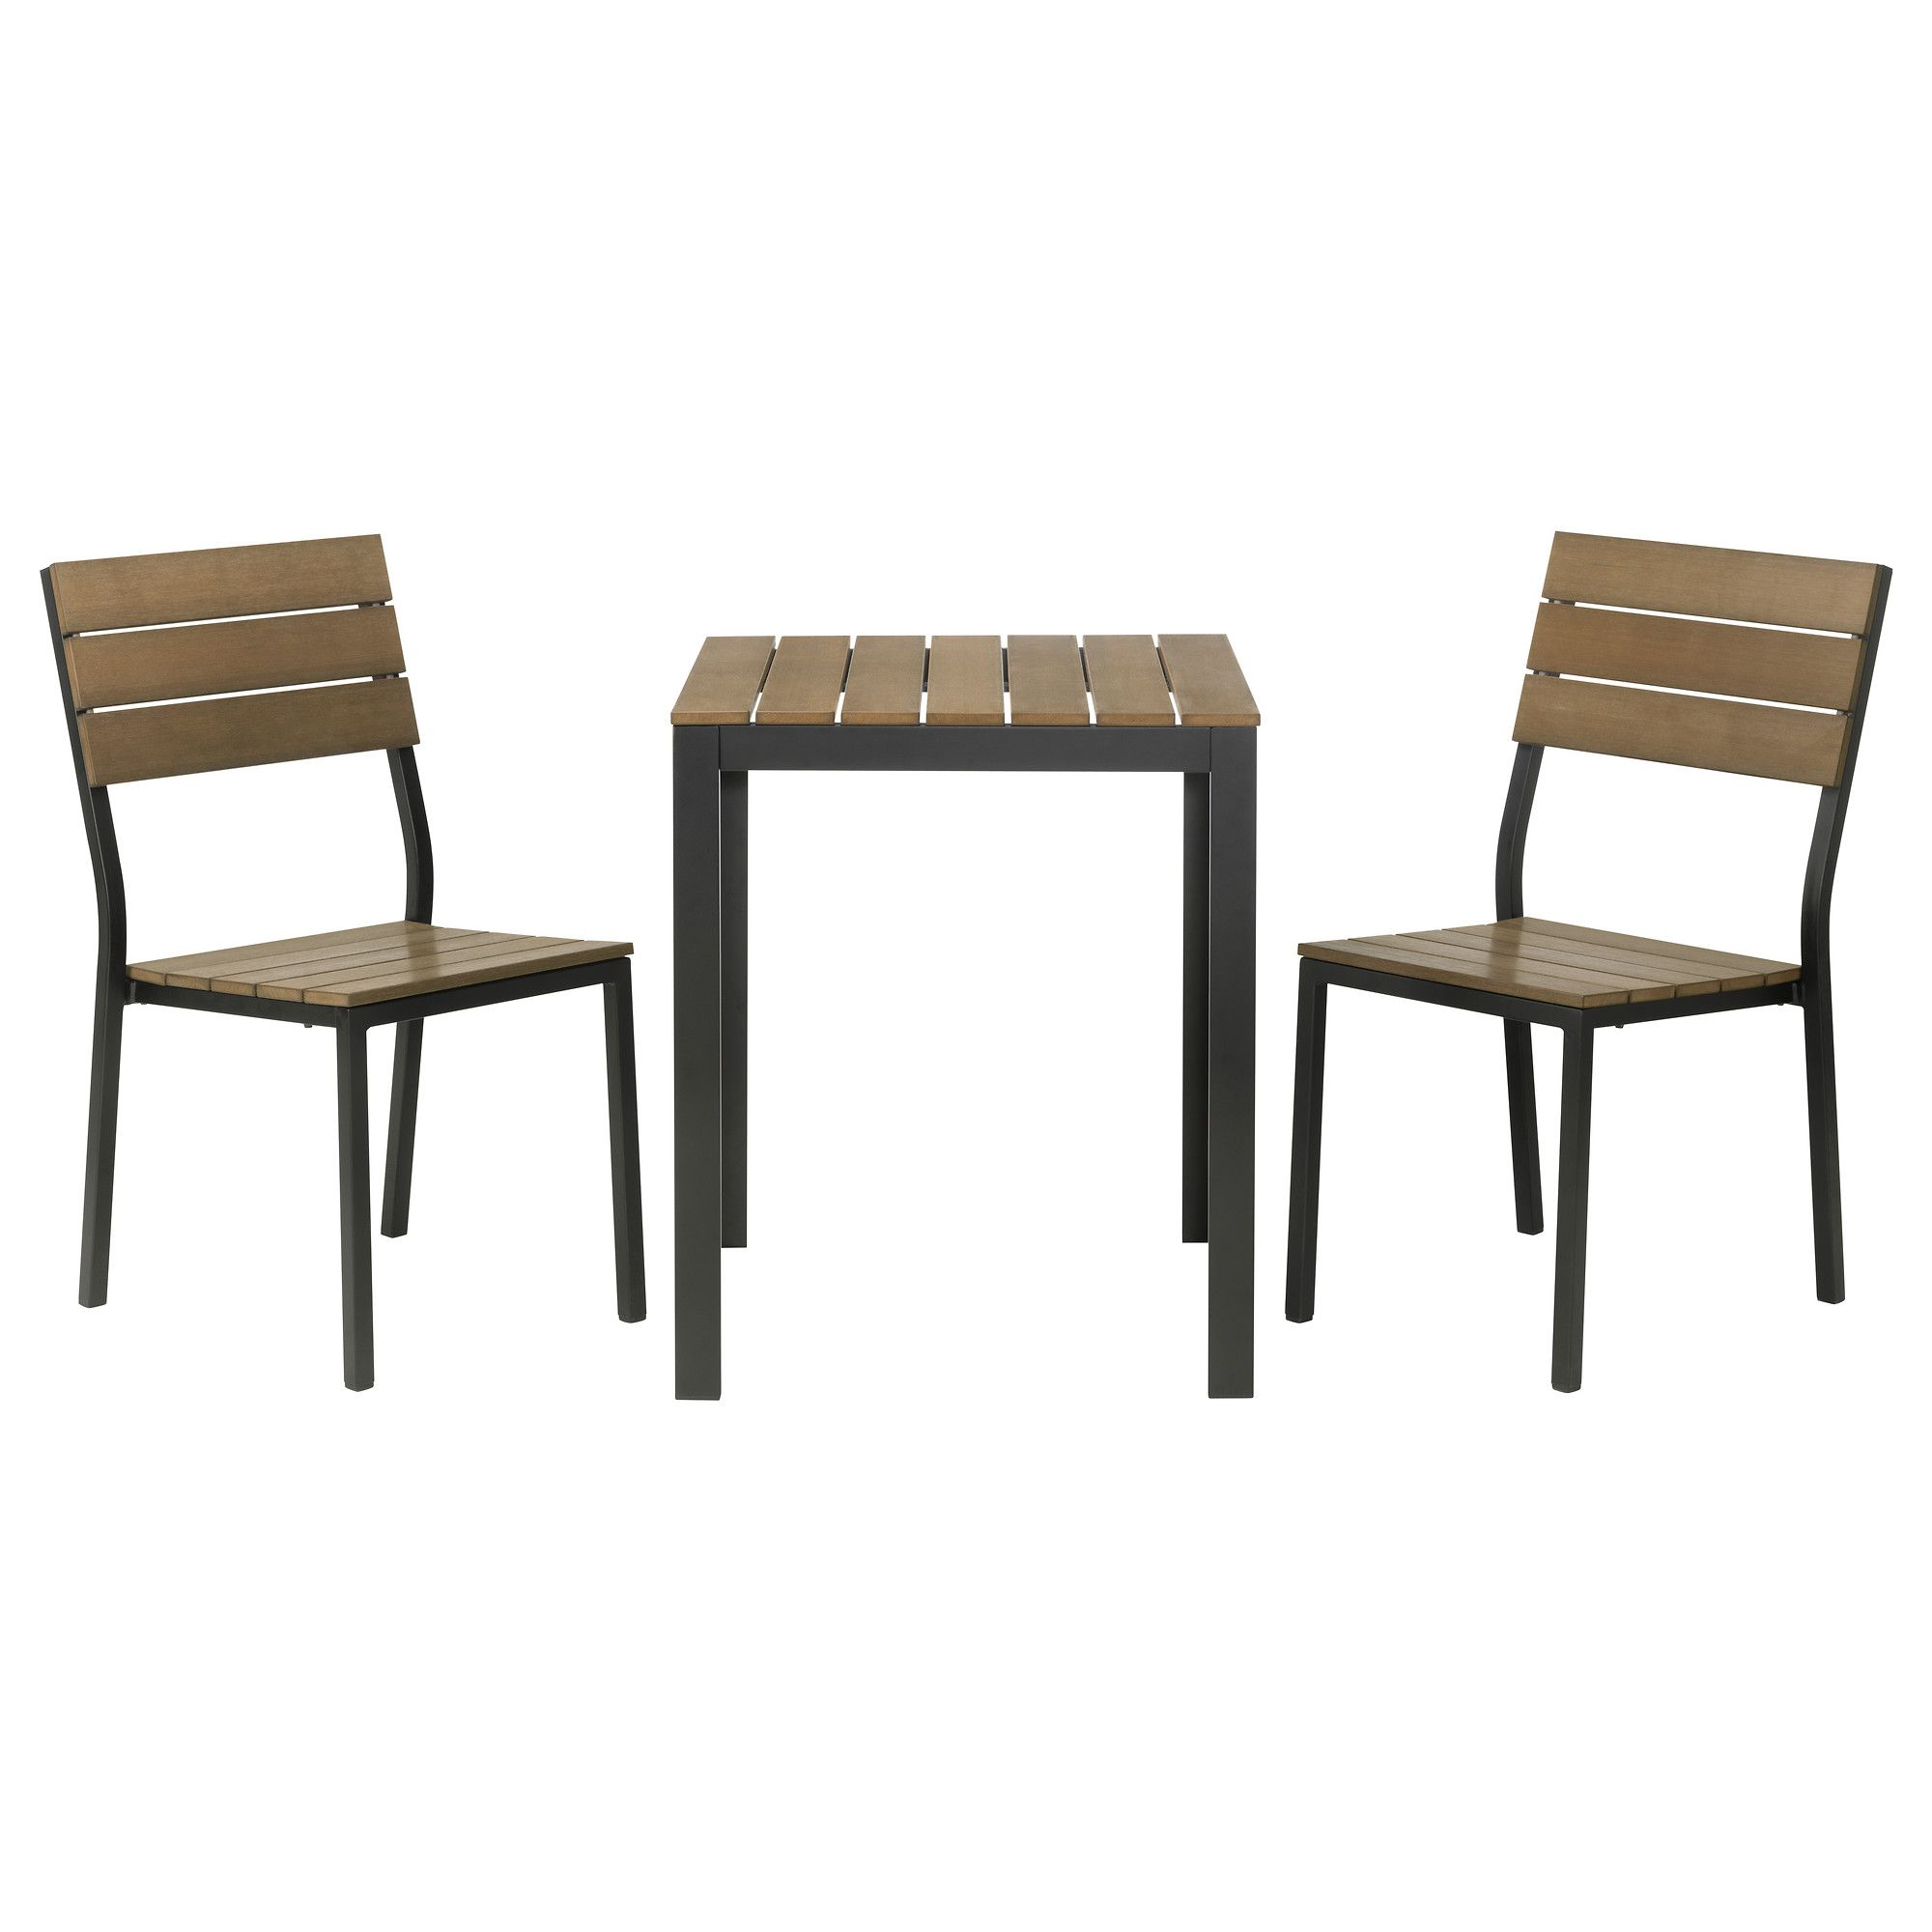 Falster Bistro Set Black Brown 189 00 The Price Reflects Selected Options Article Number